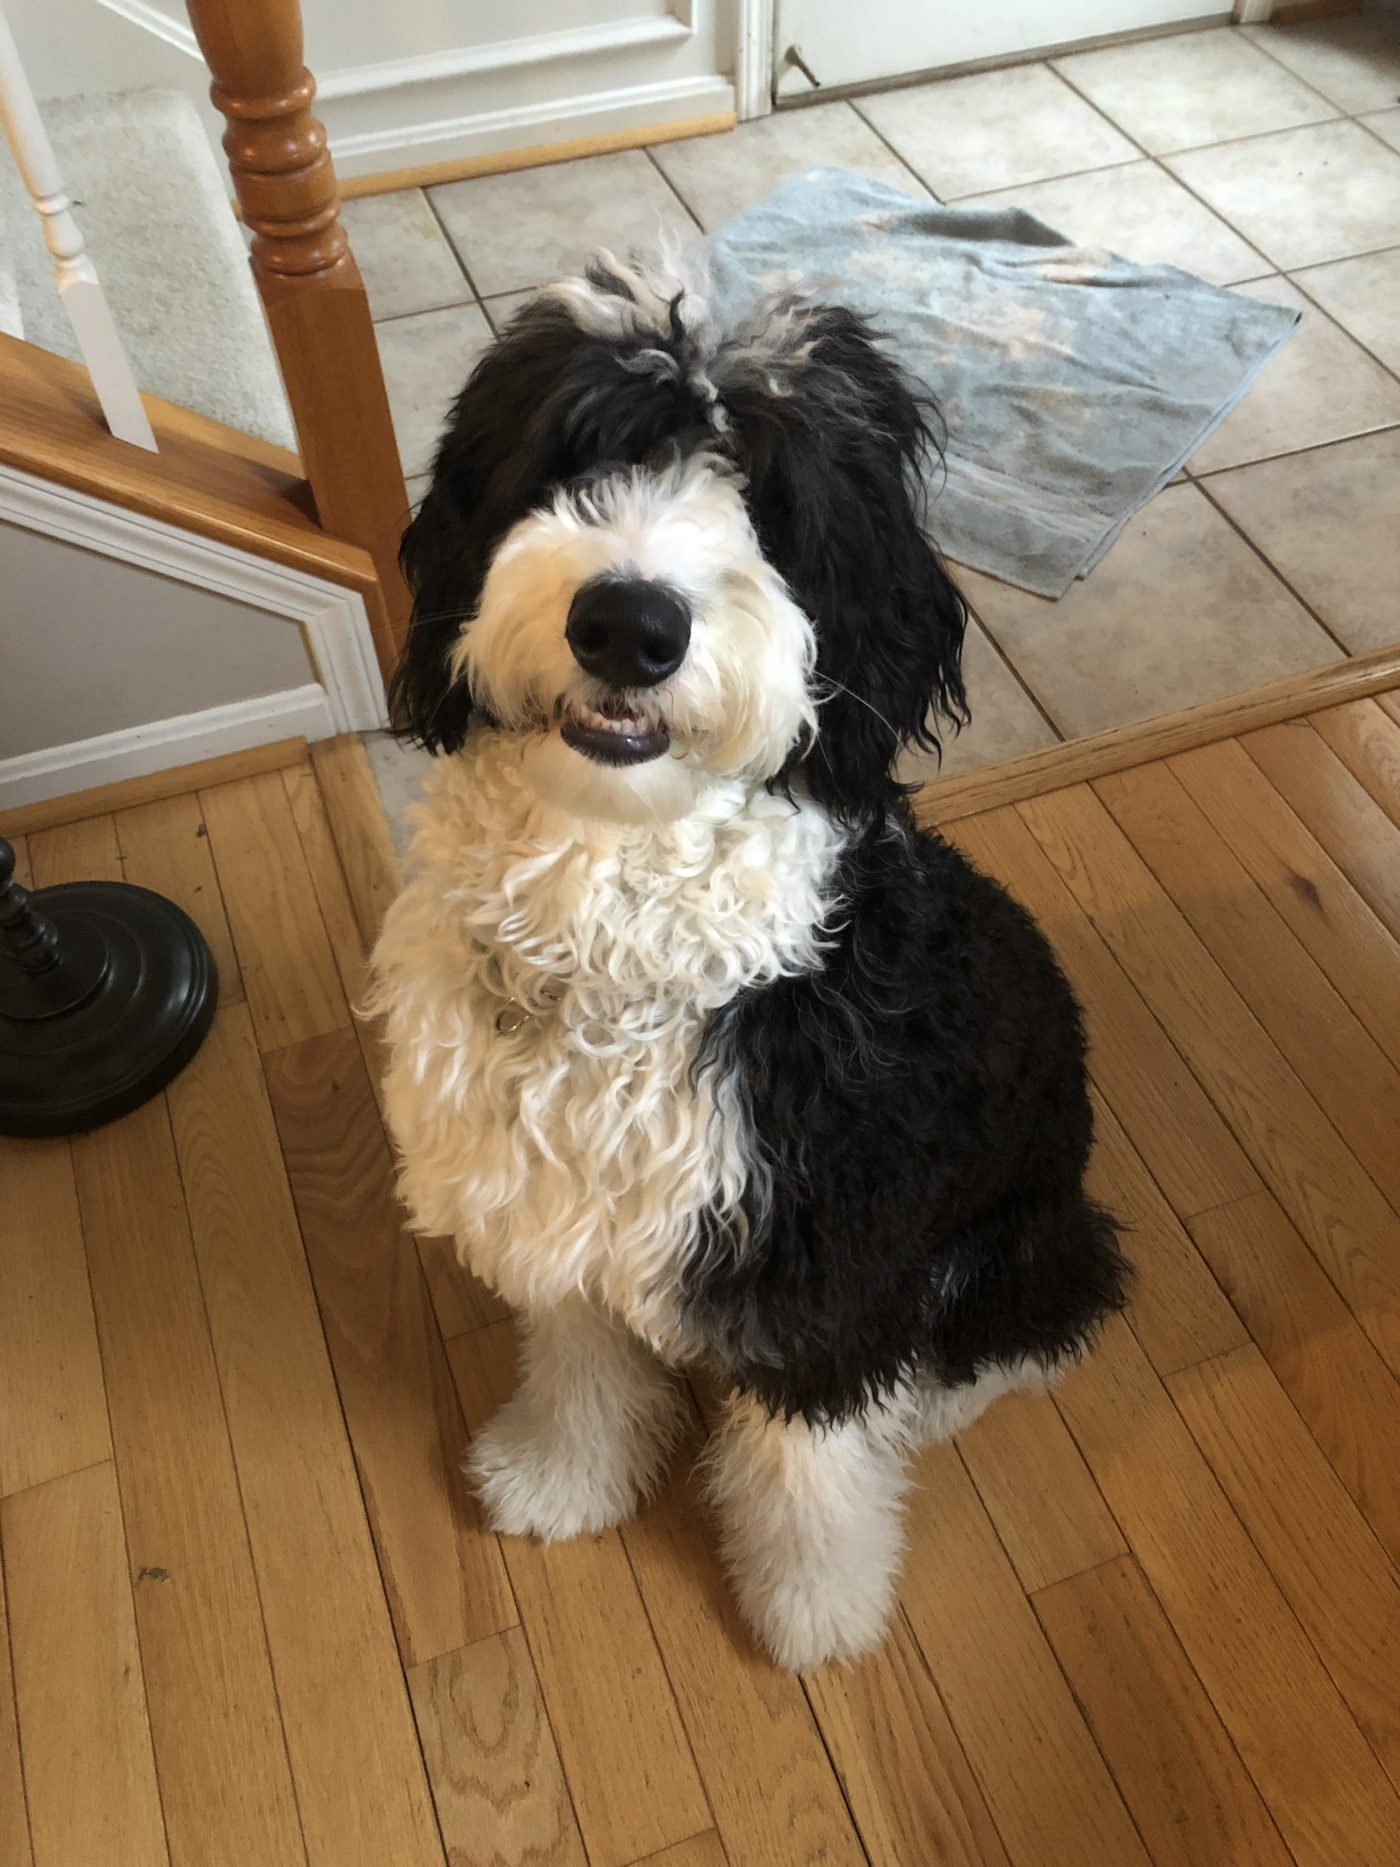 #sheepdog #sheepadoodle #bestdogtraininglouisville #leashwalking